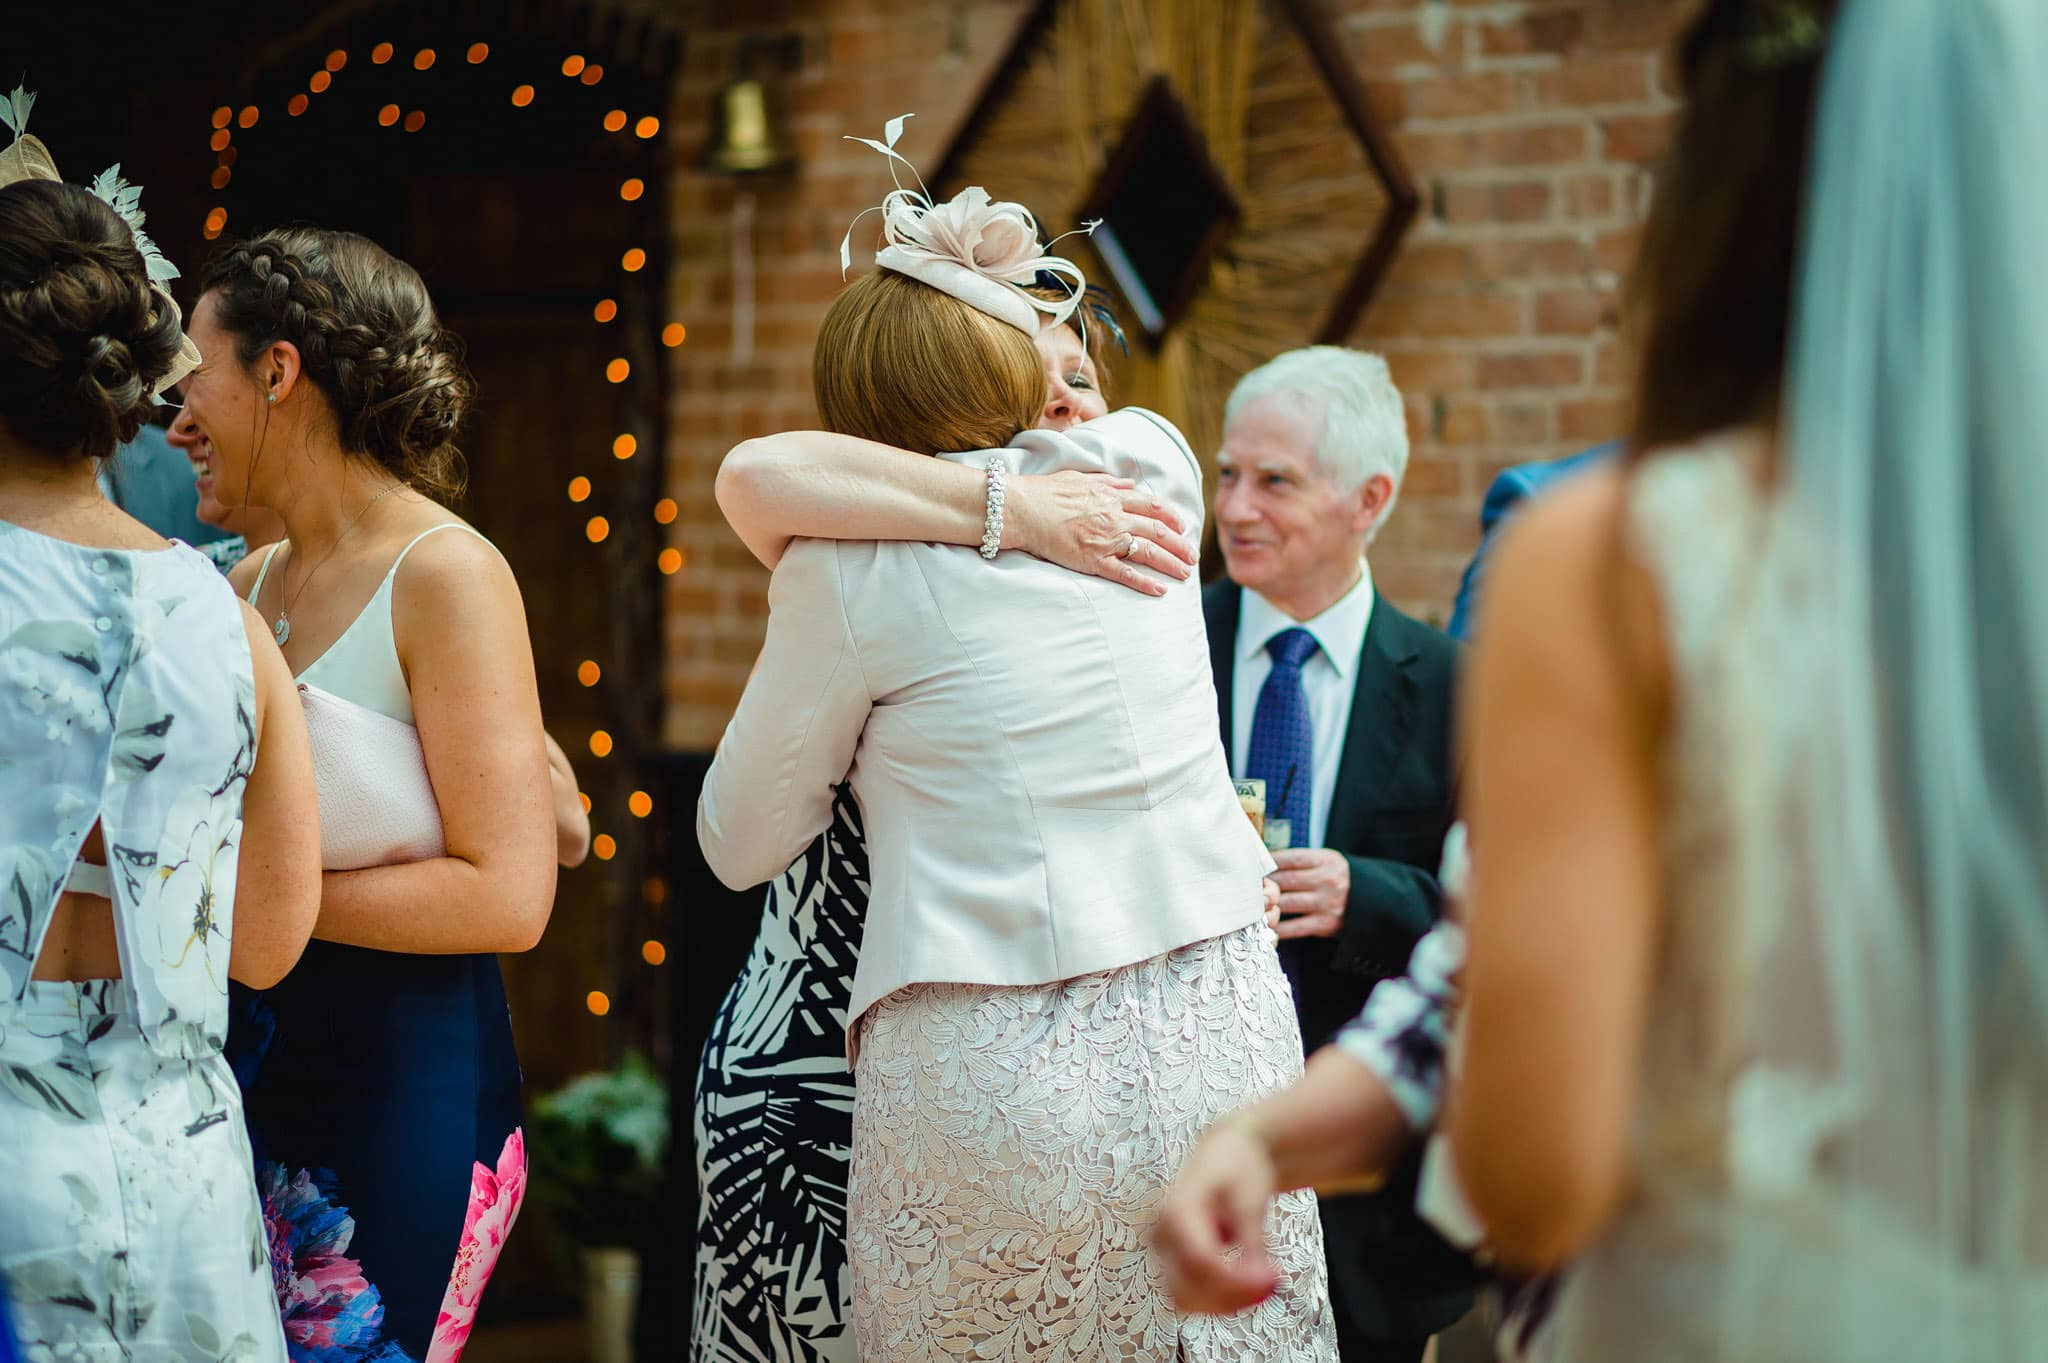 Wedding at Redhouse Barn in Stoke Prior, Worcestershire 81